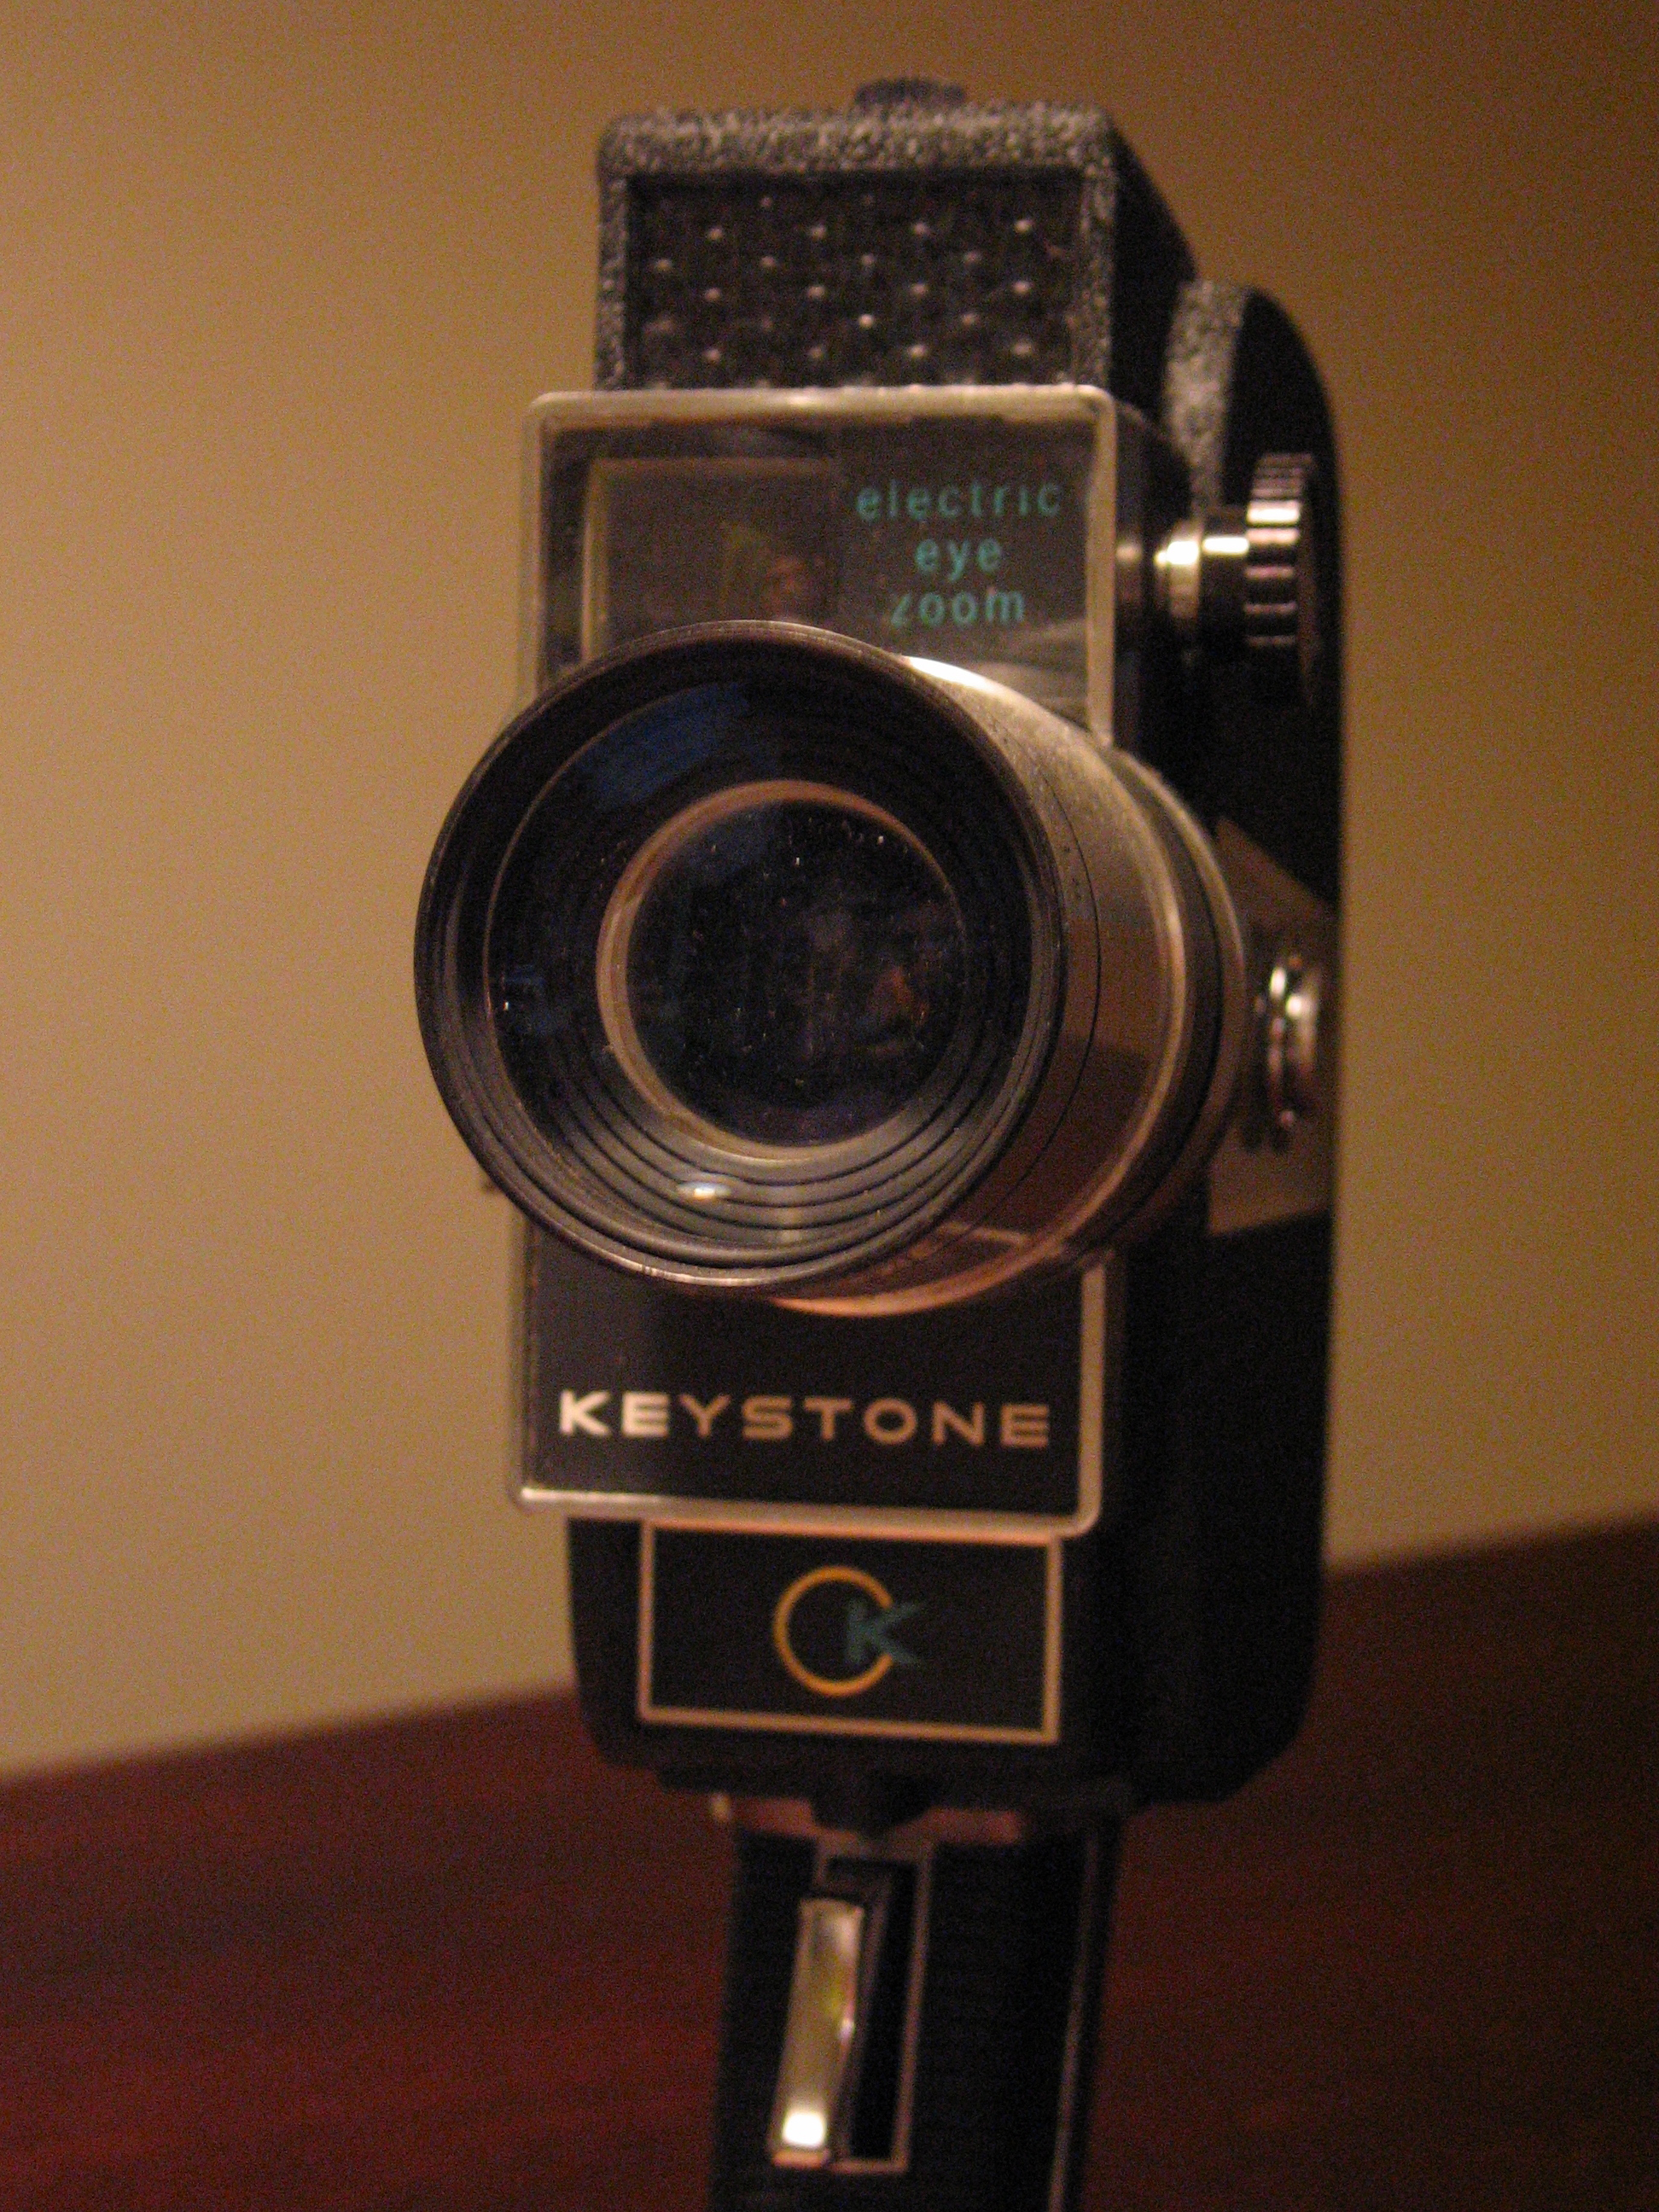 Keystone Camera Company - Wikipedia